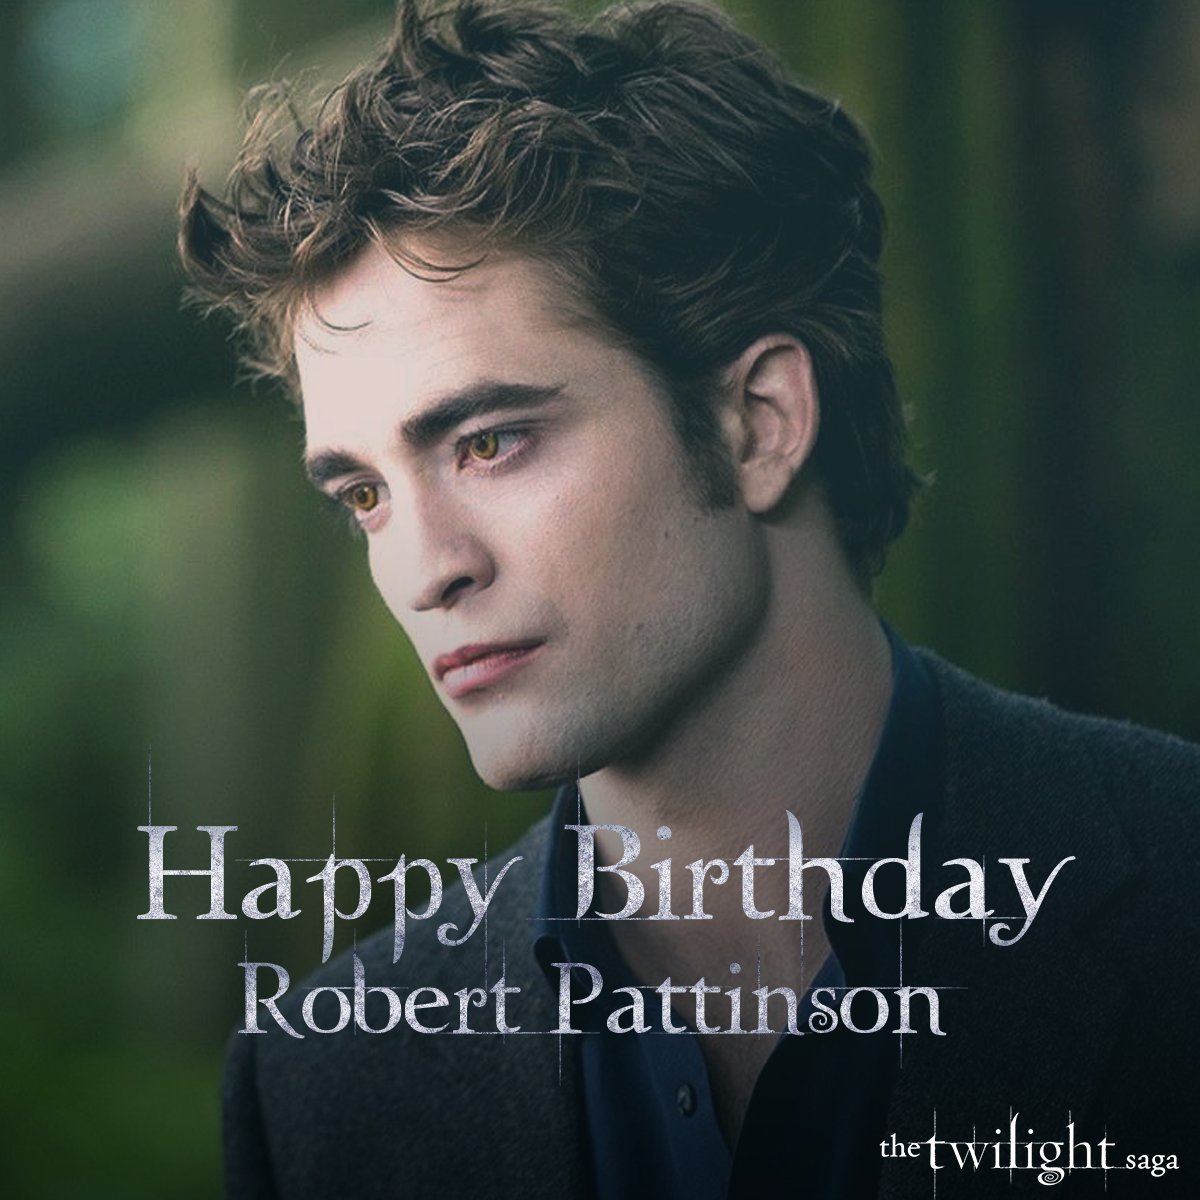 A very happy birthday to our favorite vampire, #RobertPattinson! #Twilight https://t.co/ef5JP3GPSD